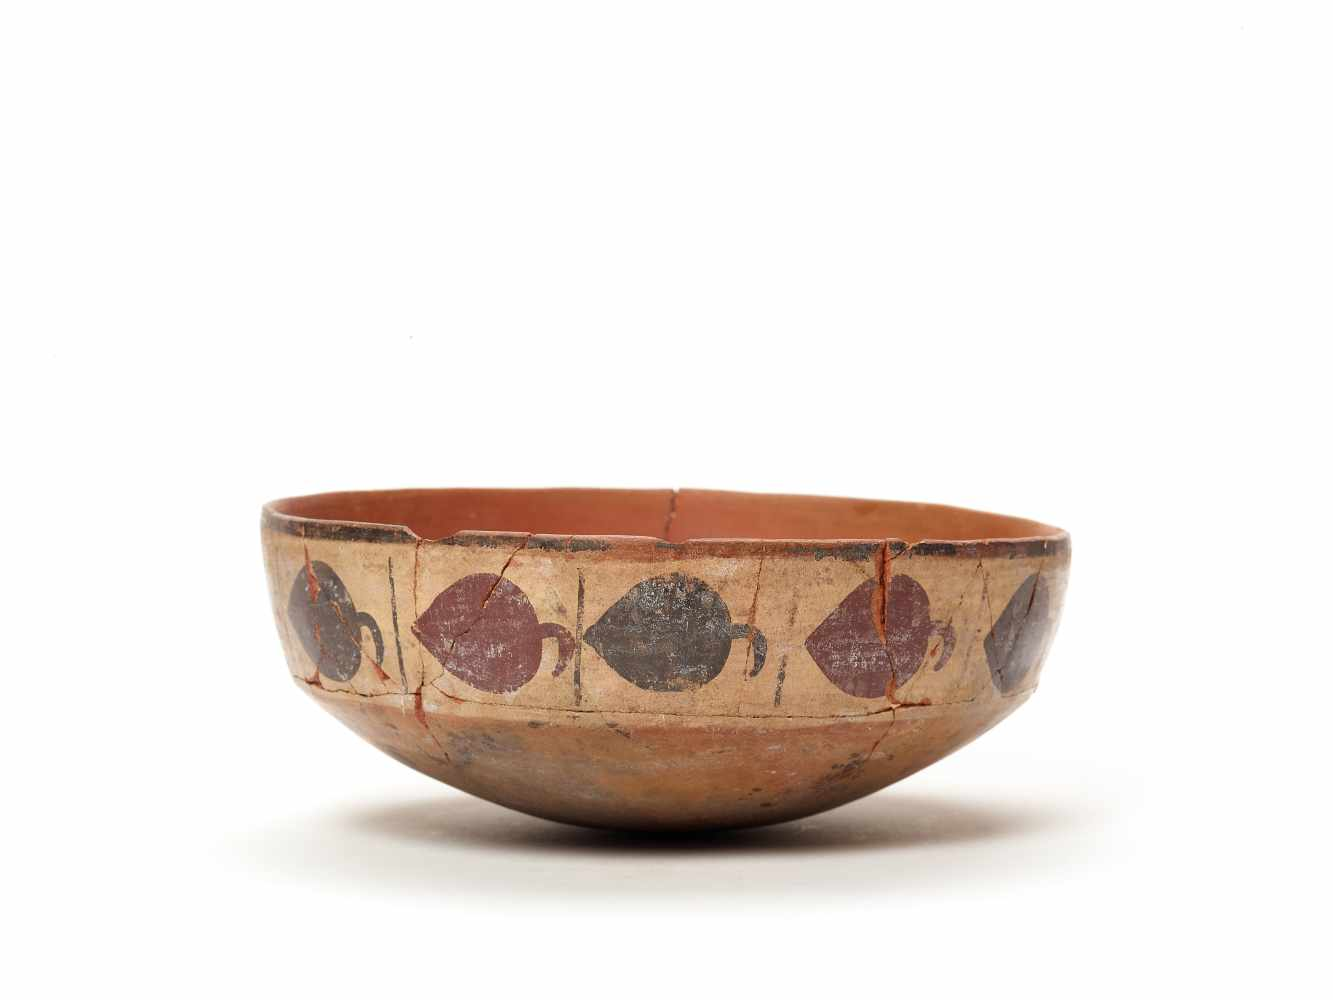 BOWL WITH BAND DECORATION - NAZCA, PERU, C. 300-600 ADPainted clayNazca, Peru, c. 300-600 ADArched - Image 2 of 5